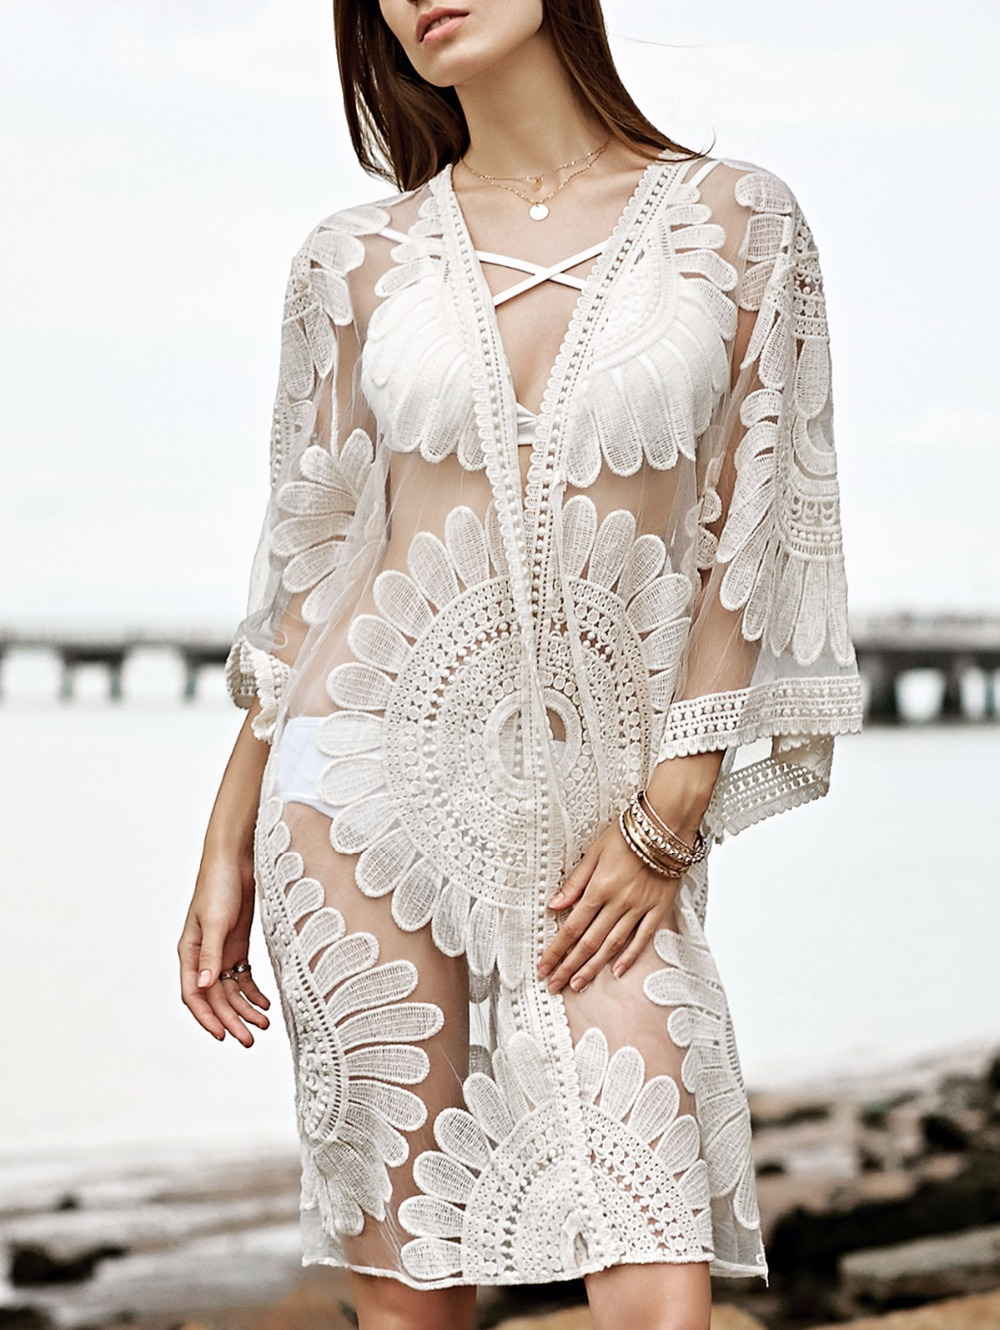 2017 Beach Cardigan Bathing Suit Cover Ups Beach Cover Up Floral Embroidery Bikini Cover Up Swimwear Women Robe